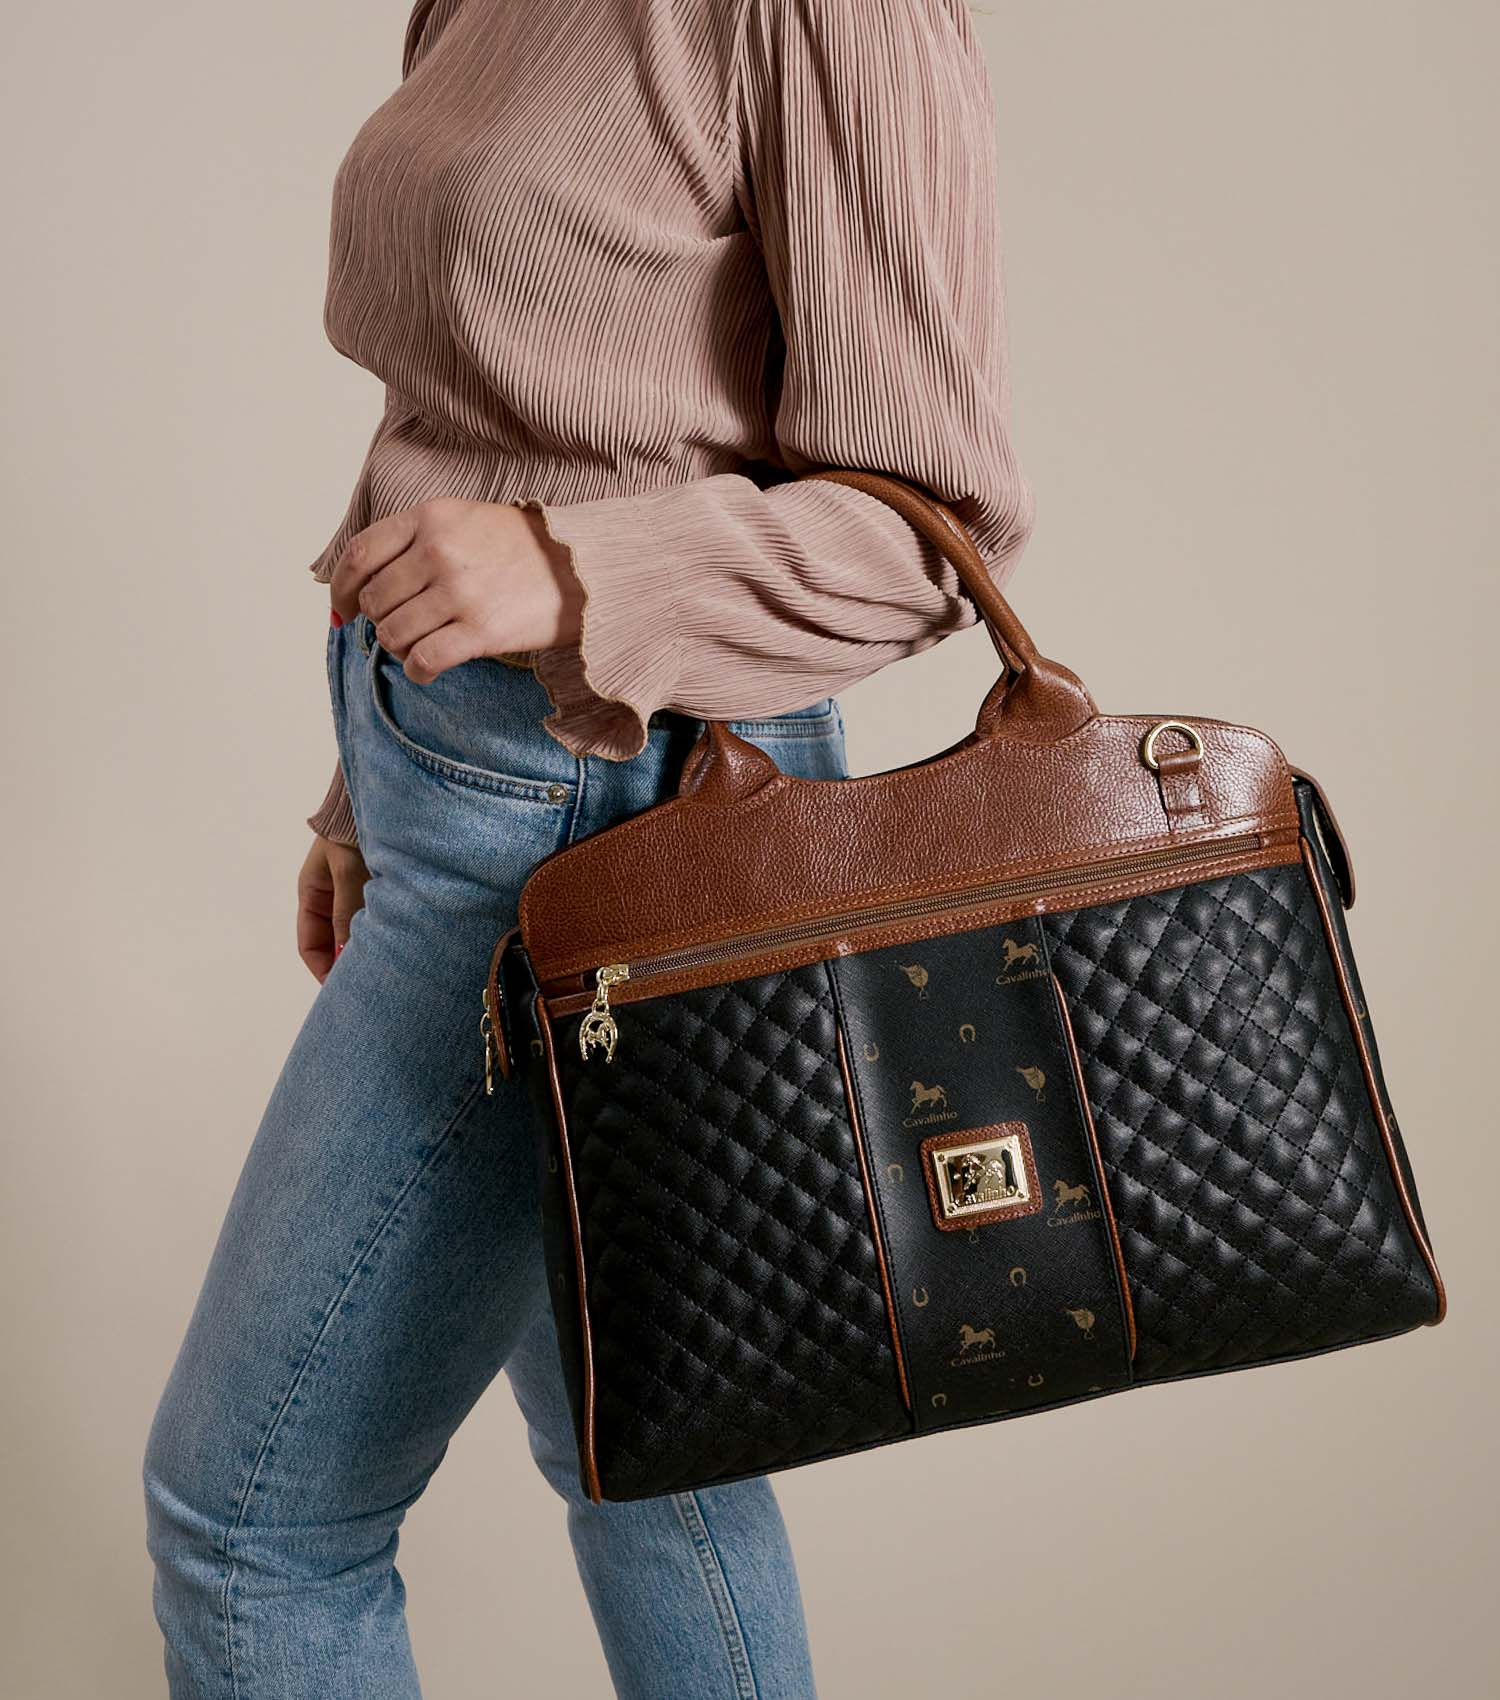 Another Skin Briefcase